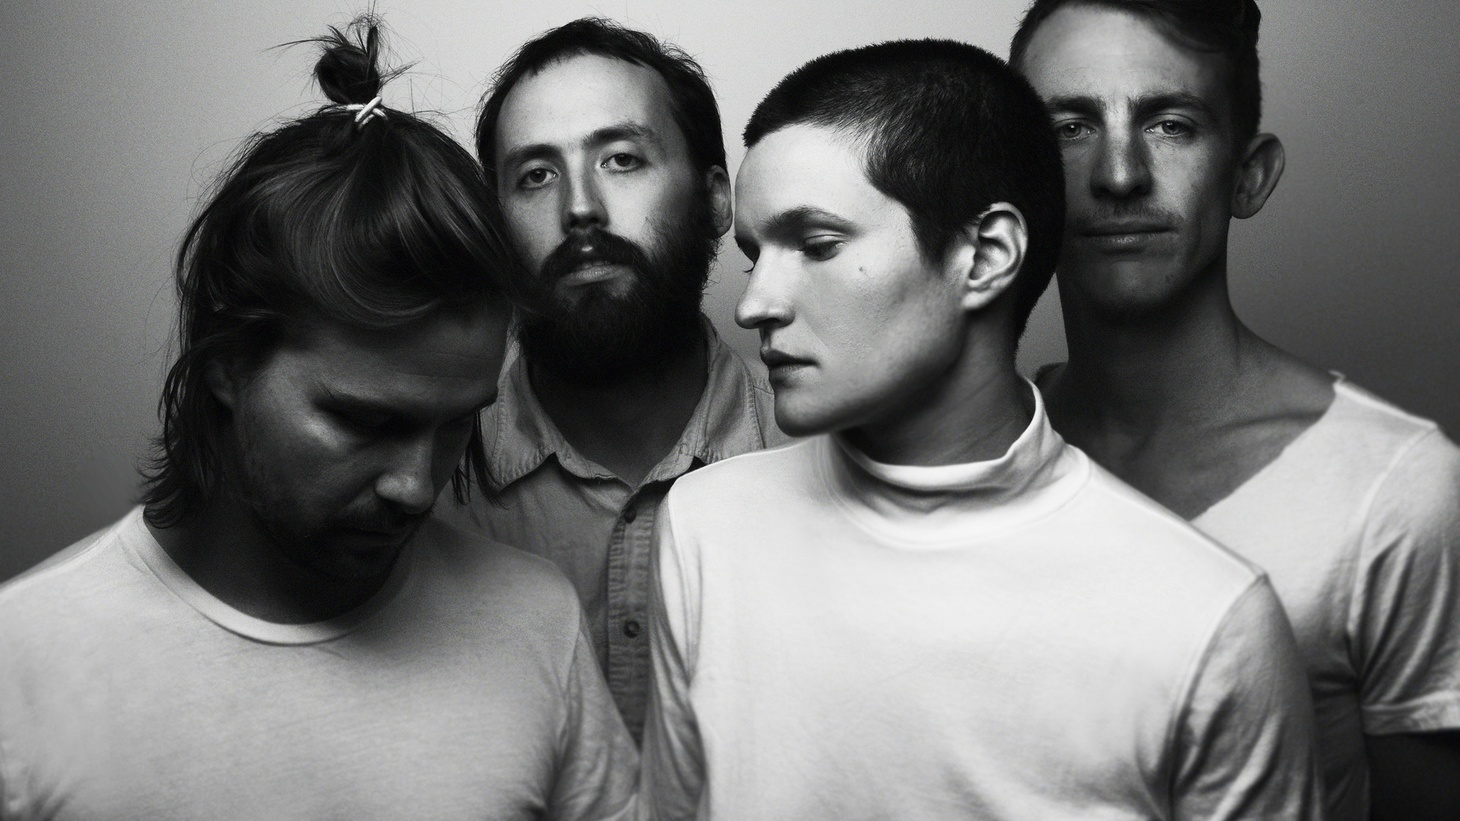 Just a year after releasing its debut album, Big Thief returns with a new collection of 11 folk-tinged songs.